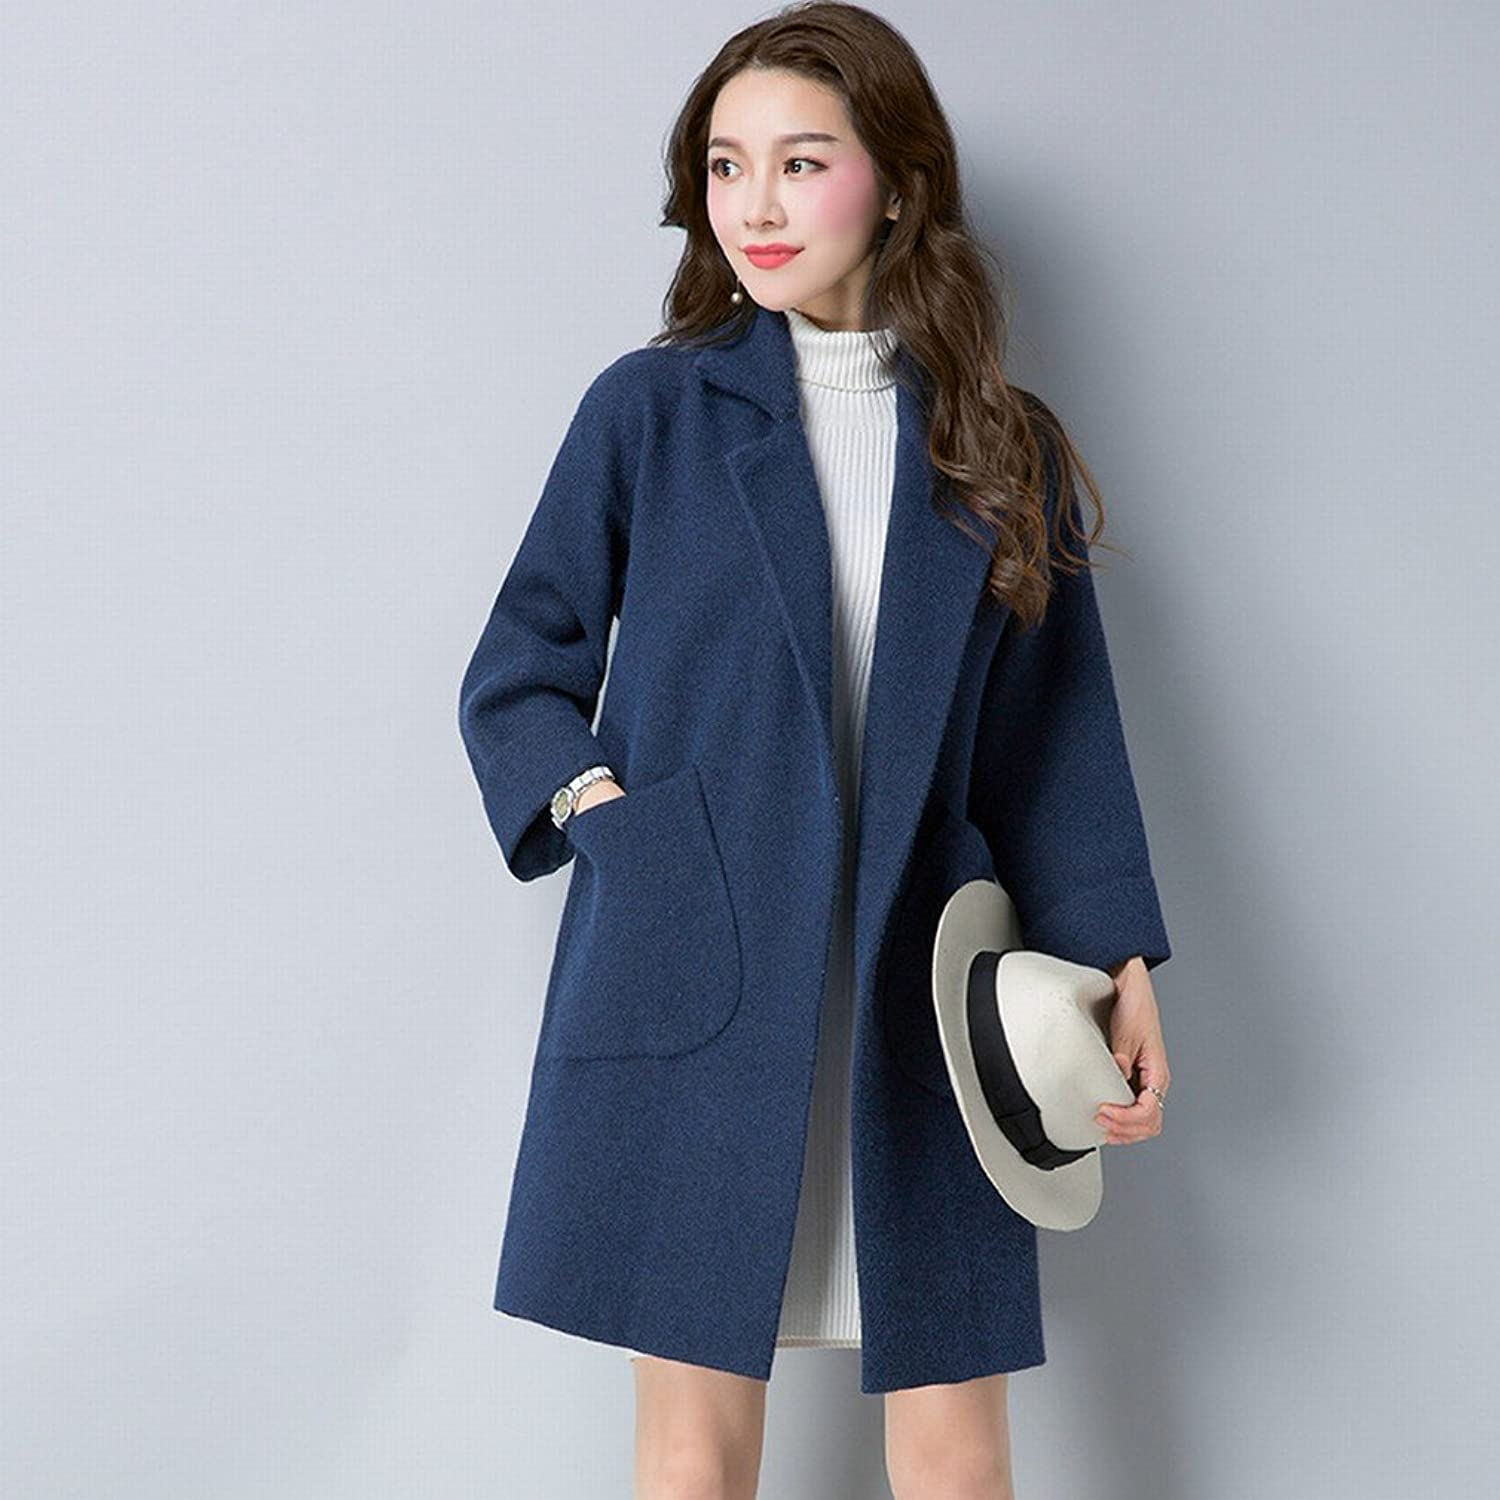 BTTB Autumn and Winter Women 'S DoubleOpposite Coat in The Long Section of Loose Sweater Jacket Thickening